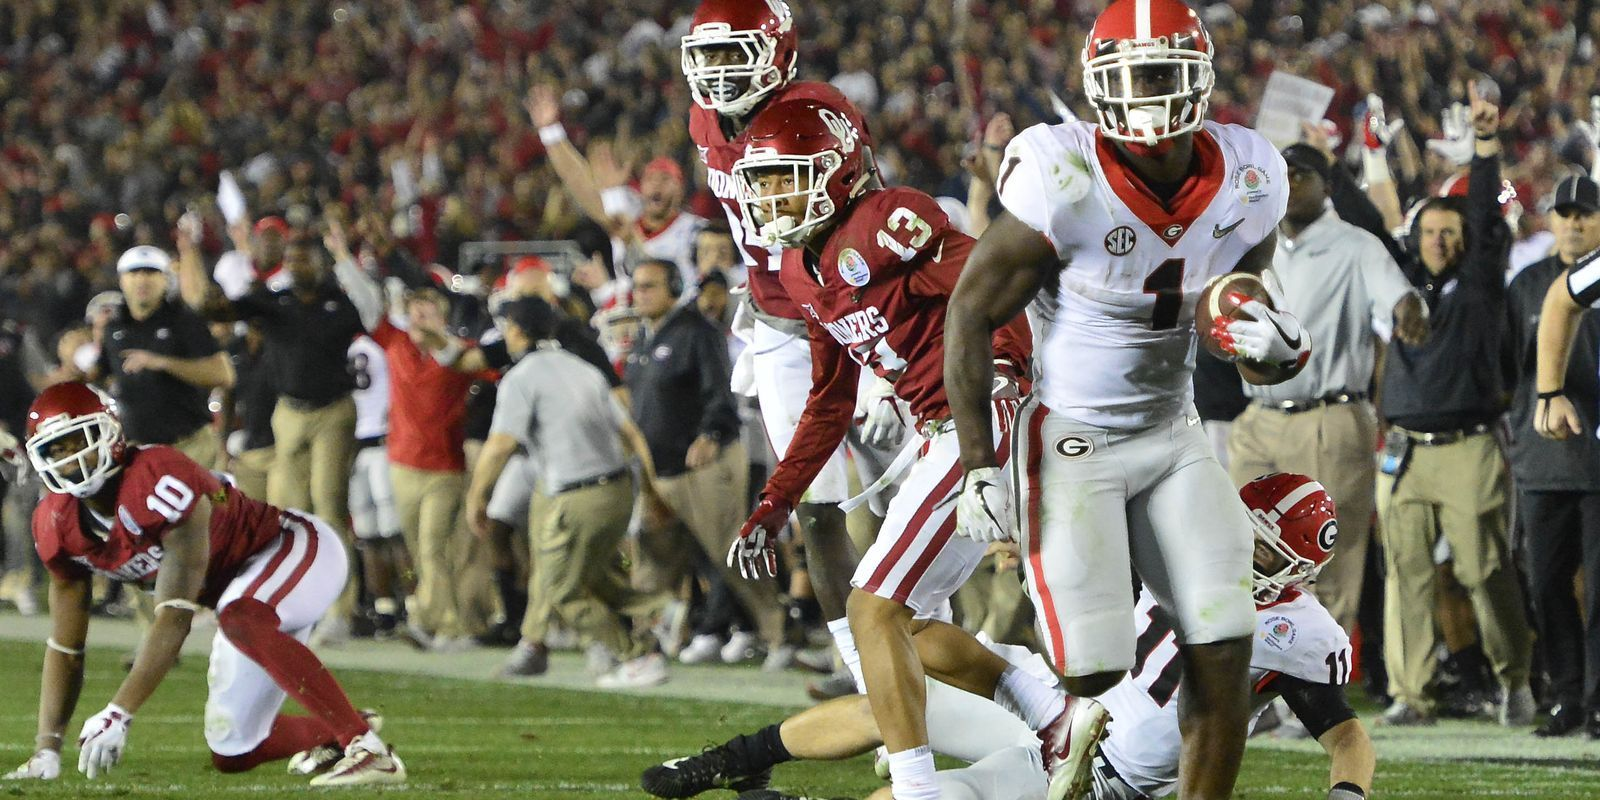 Georgia survives Oklahoma in classic, back